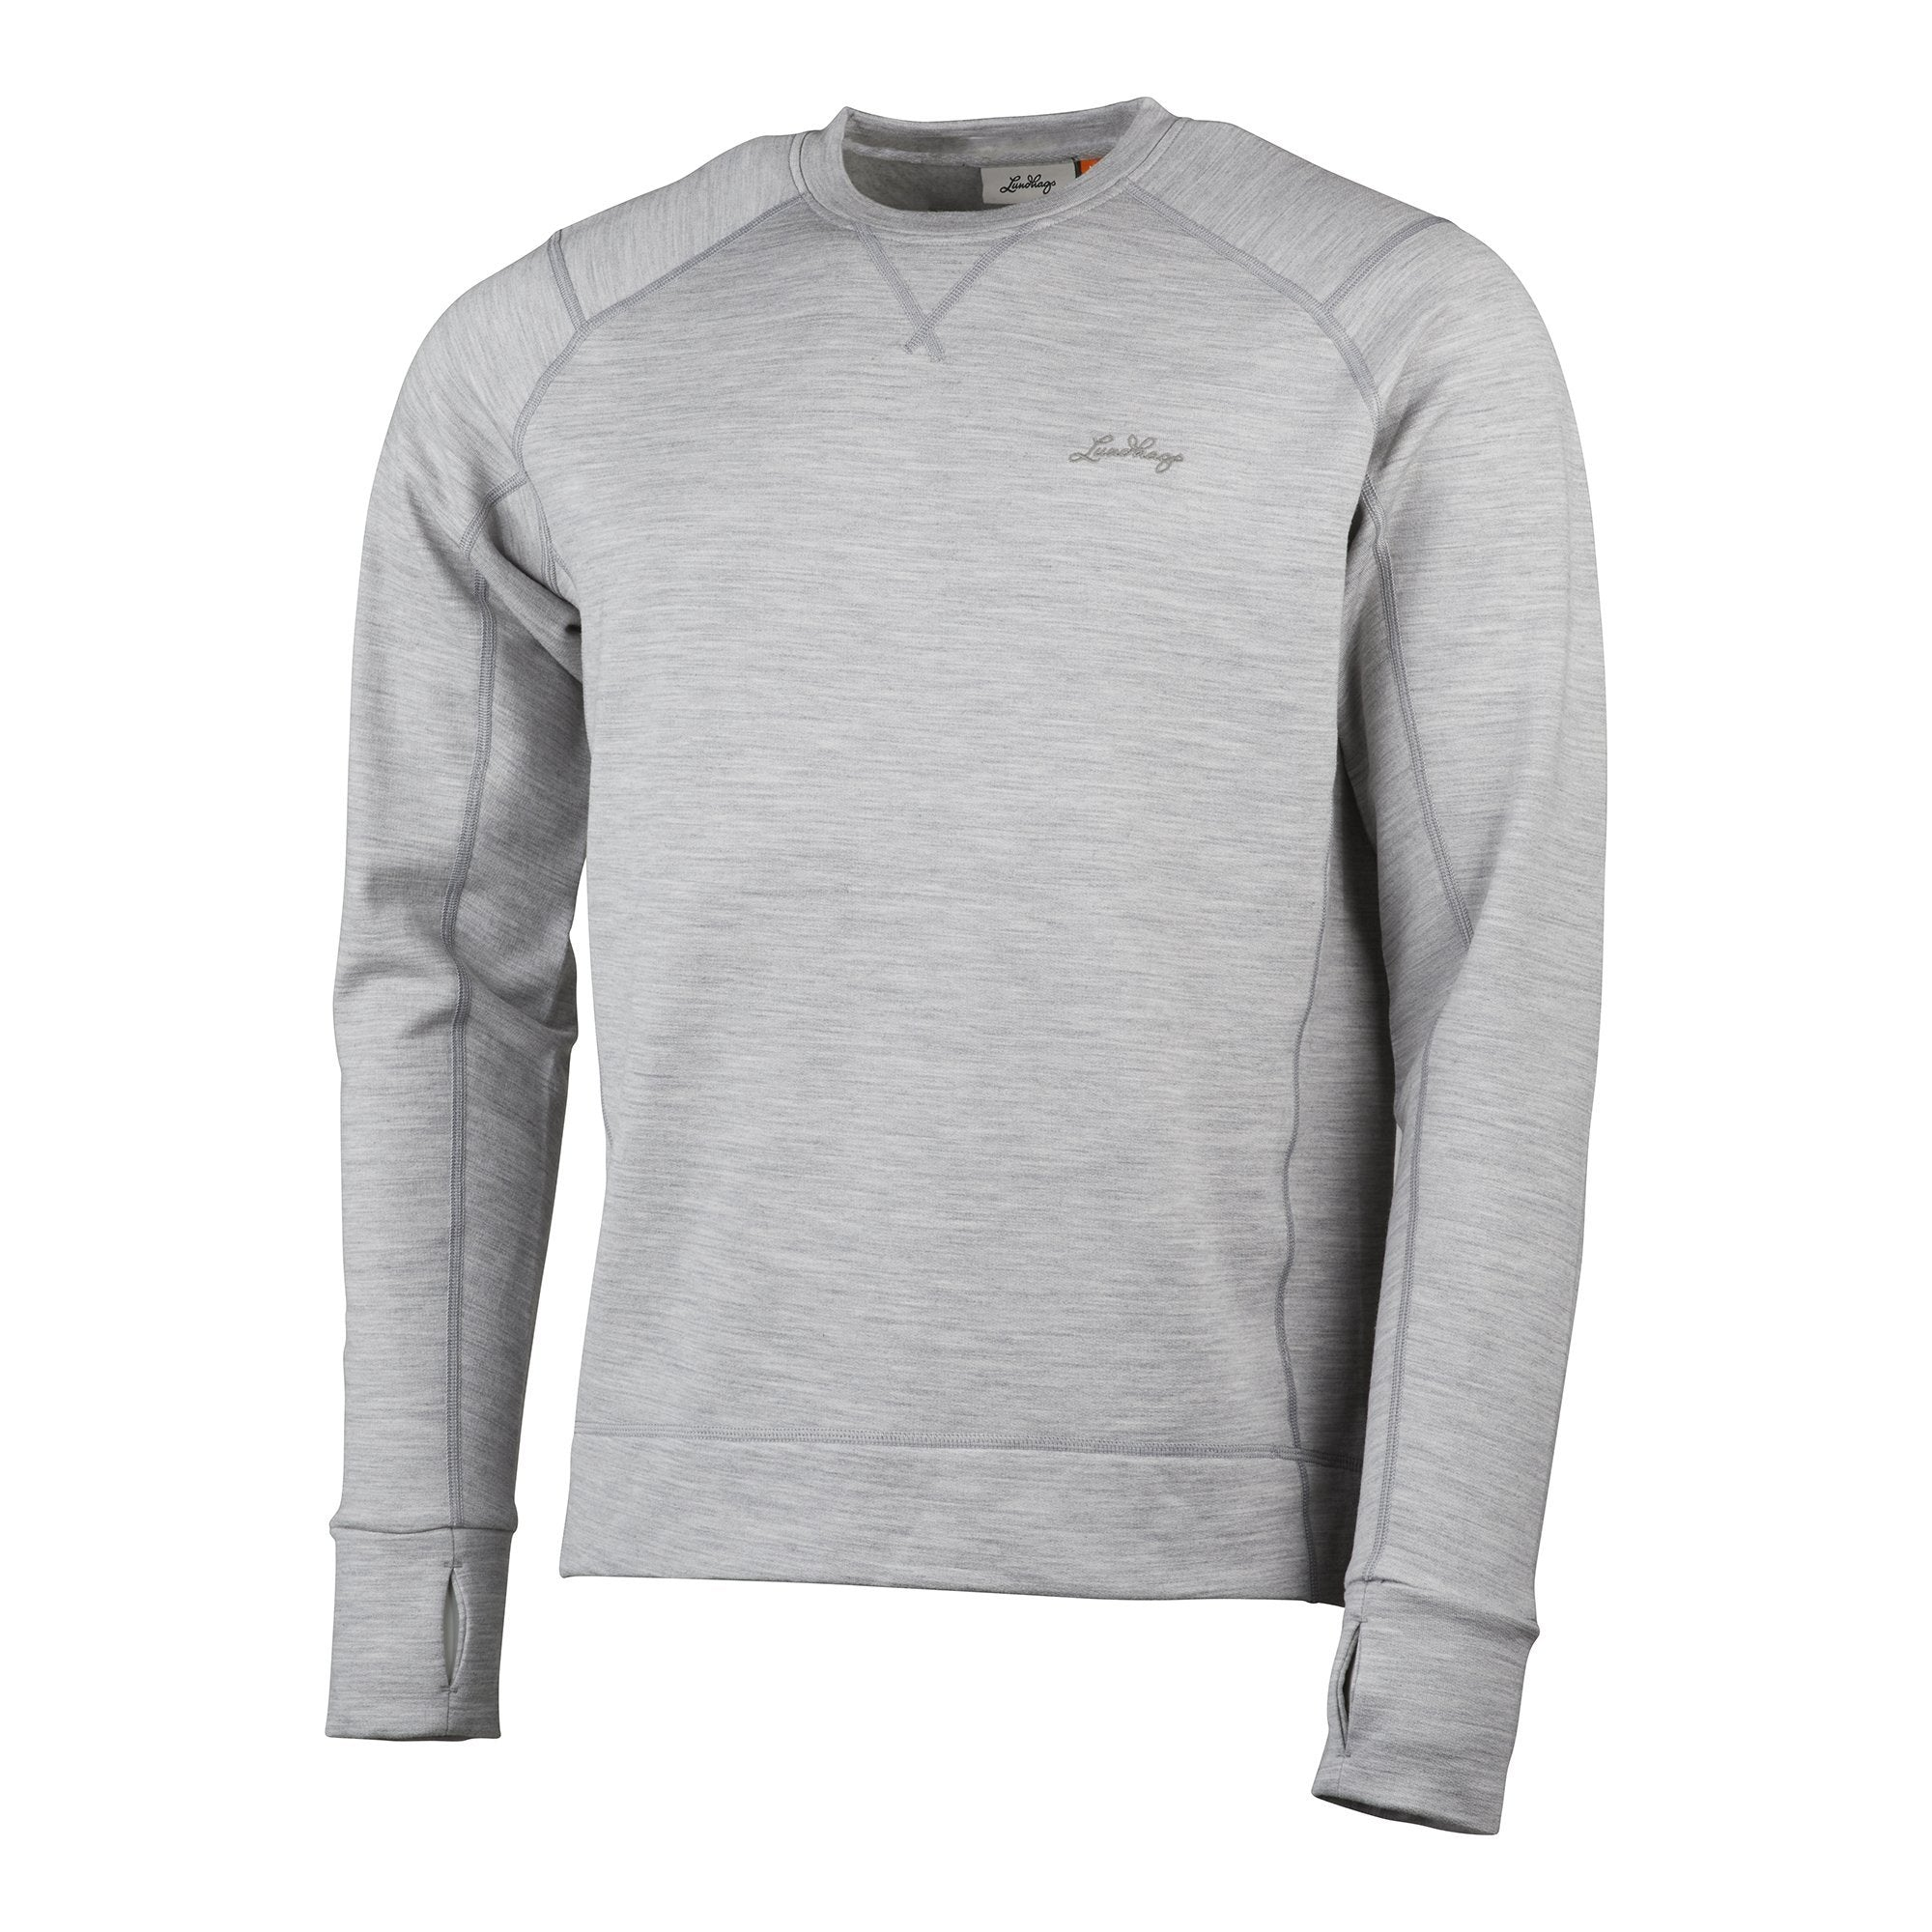 Ullto Merino Crew - Light Grey - Herr - Vindpinad